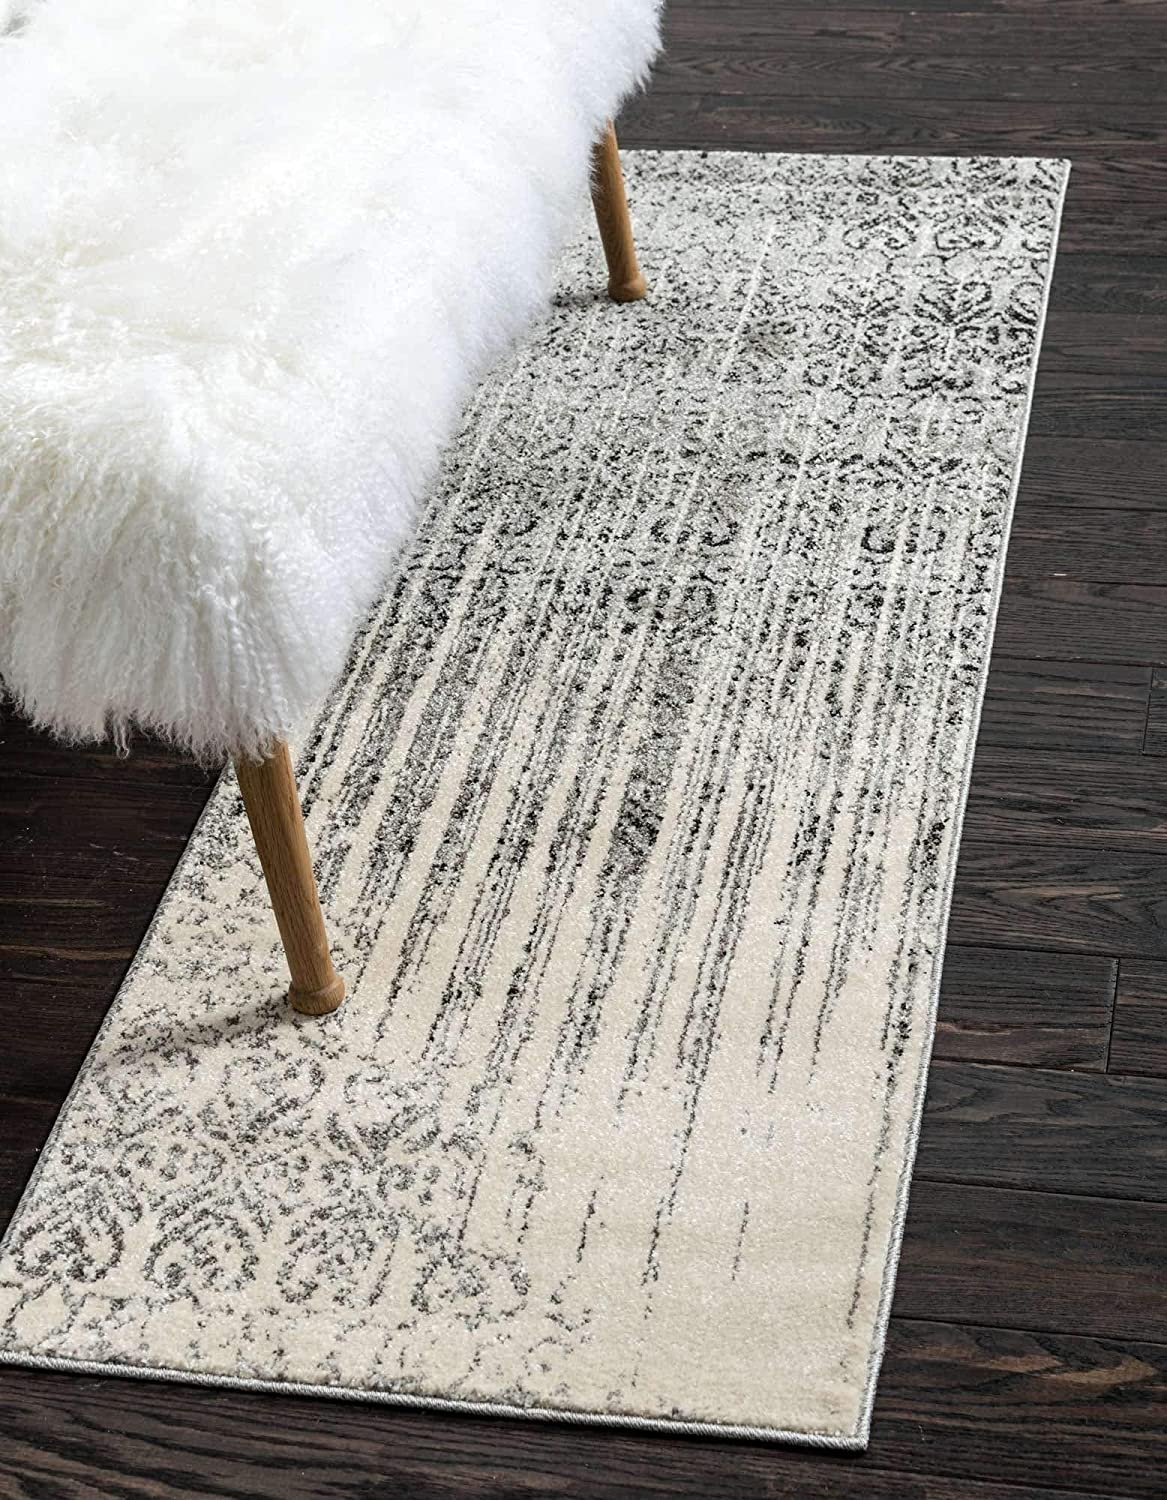 Unique Loom Del Mar Collection Contemporary Transitional Gray Runner Rug (2' 0 x 6' 0)